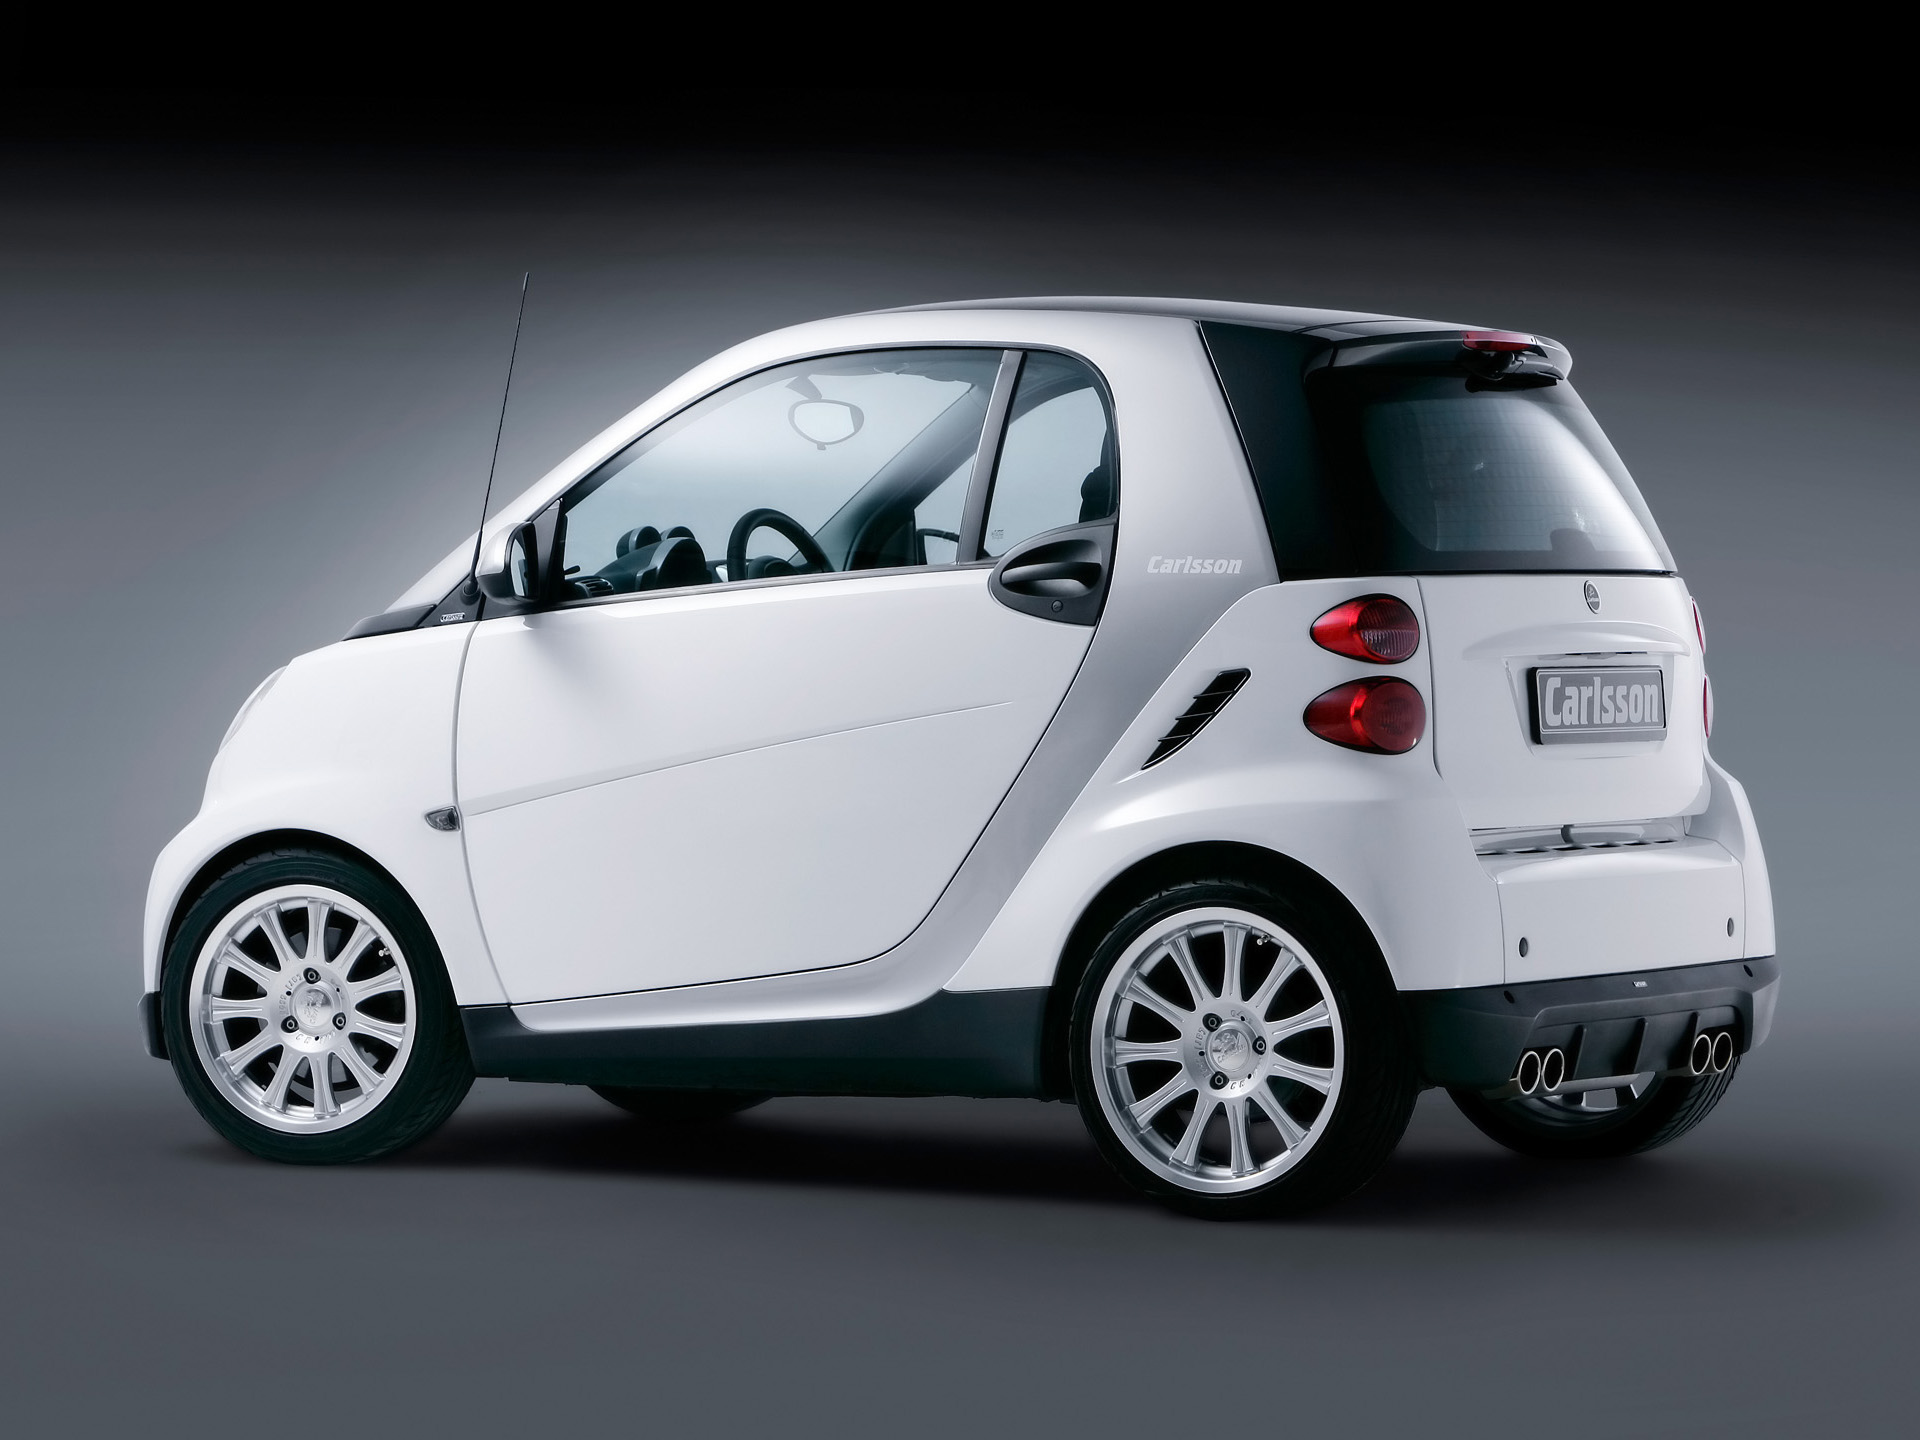 Carlsson Smart fortwo photo 58314